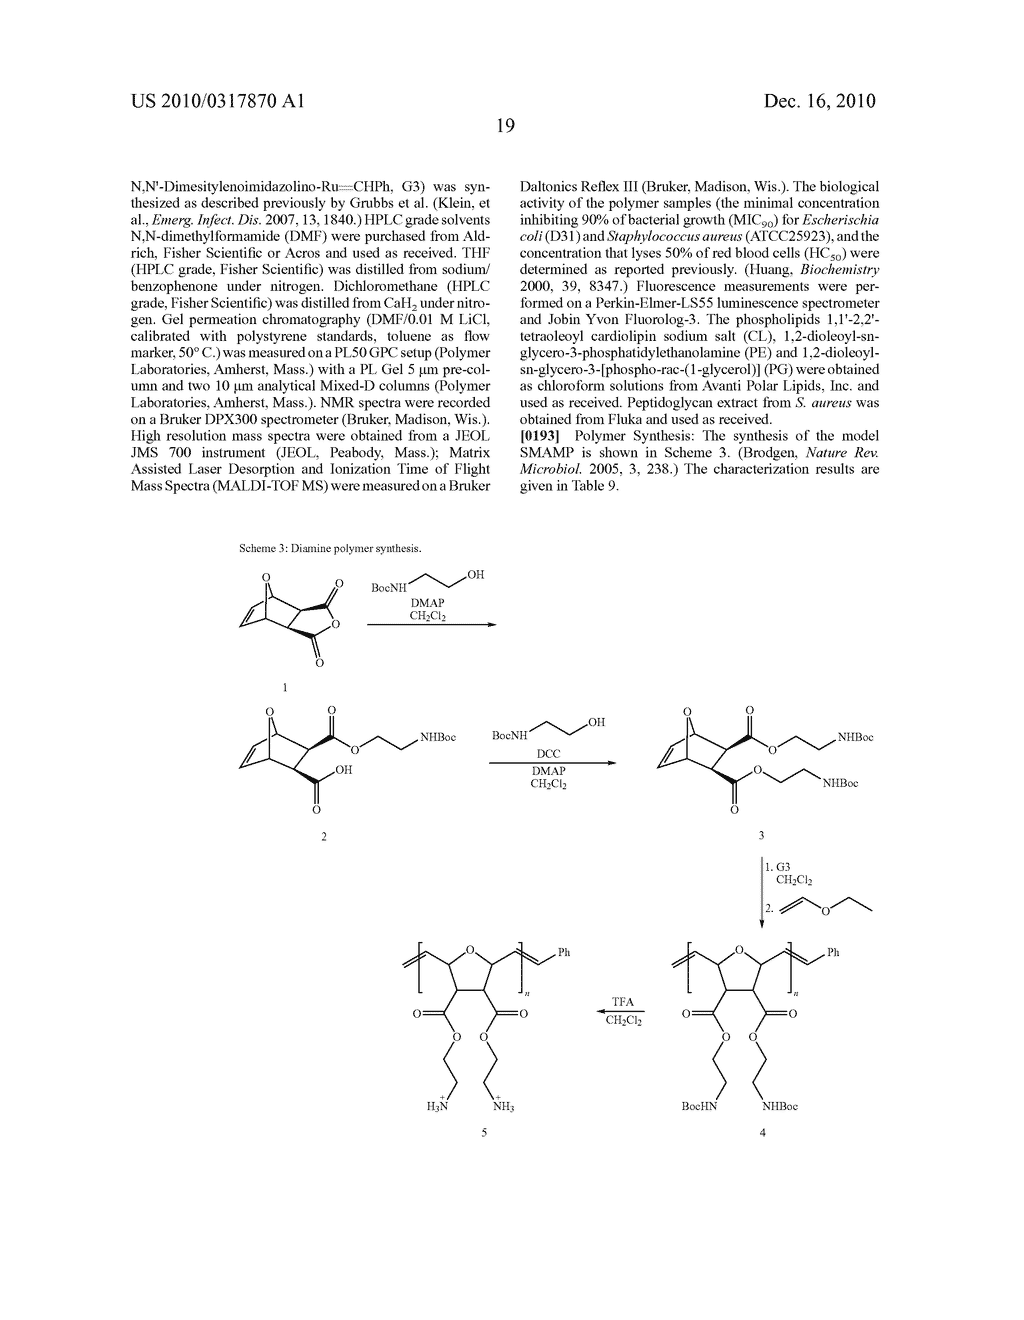 ANTIMICROBIAL POLYMERS - diagram, schematic, and image 86